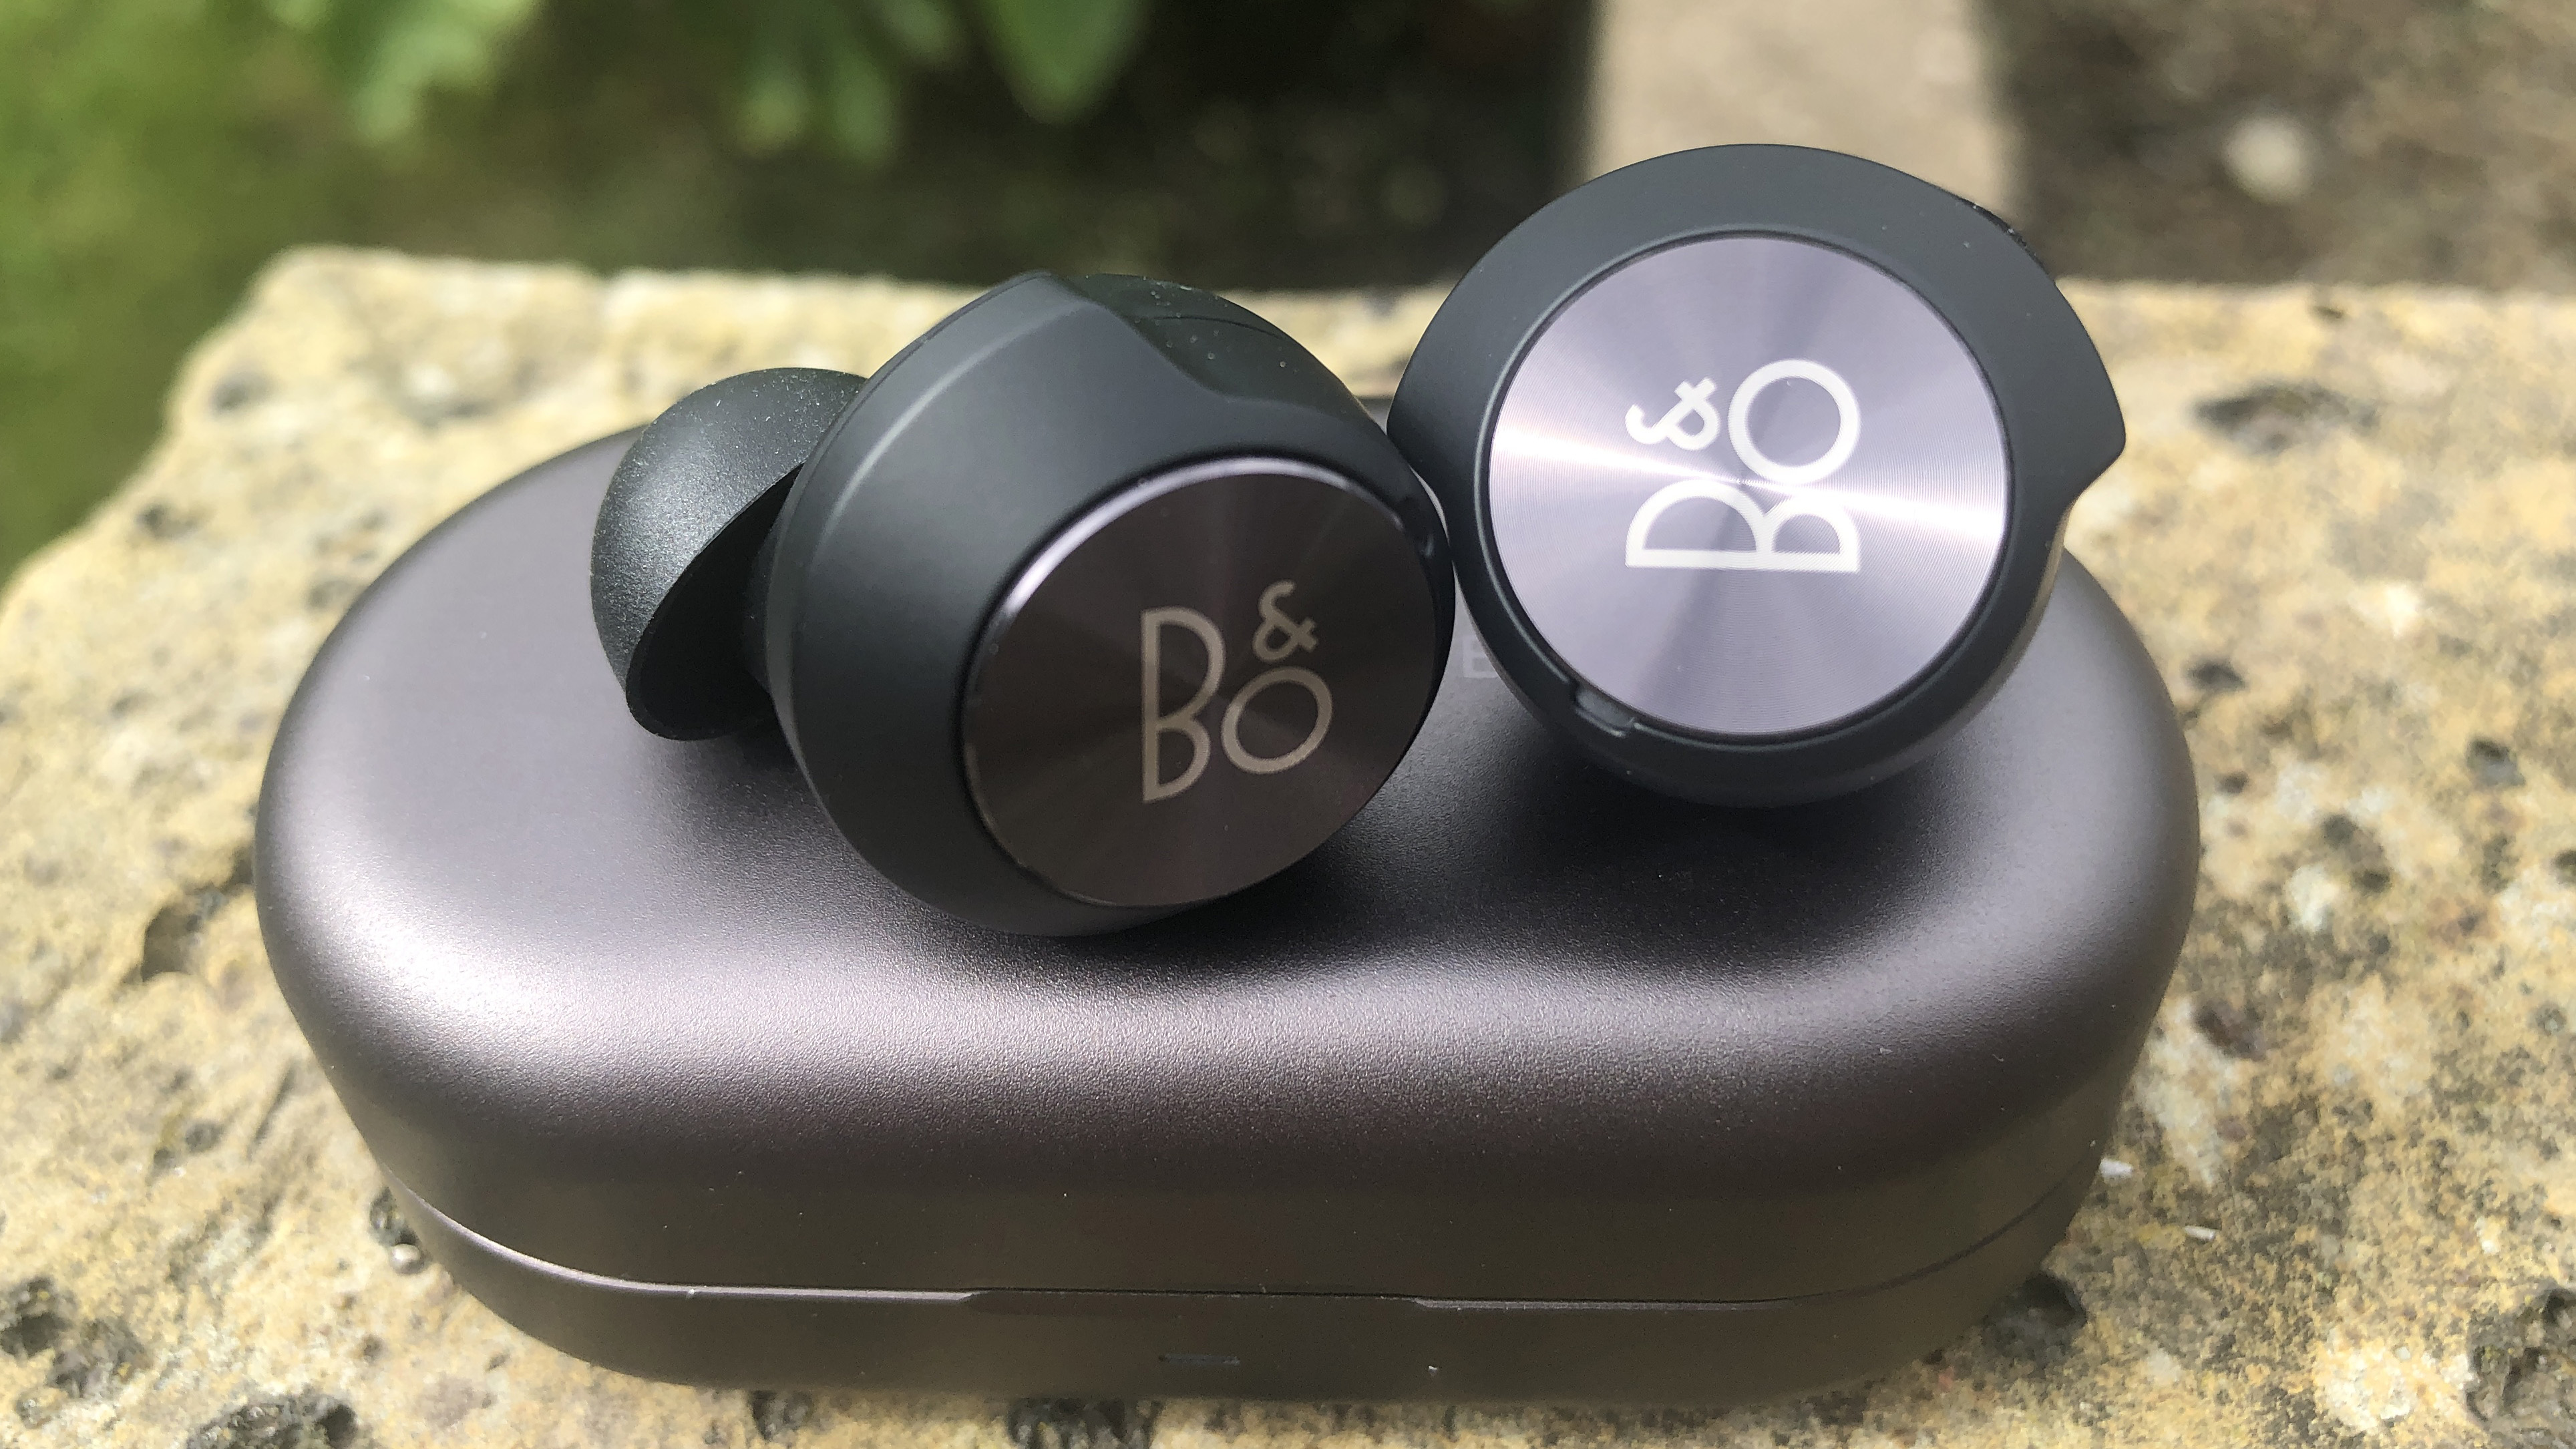 the beoplay eq true wireless earbuds on their charging case